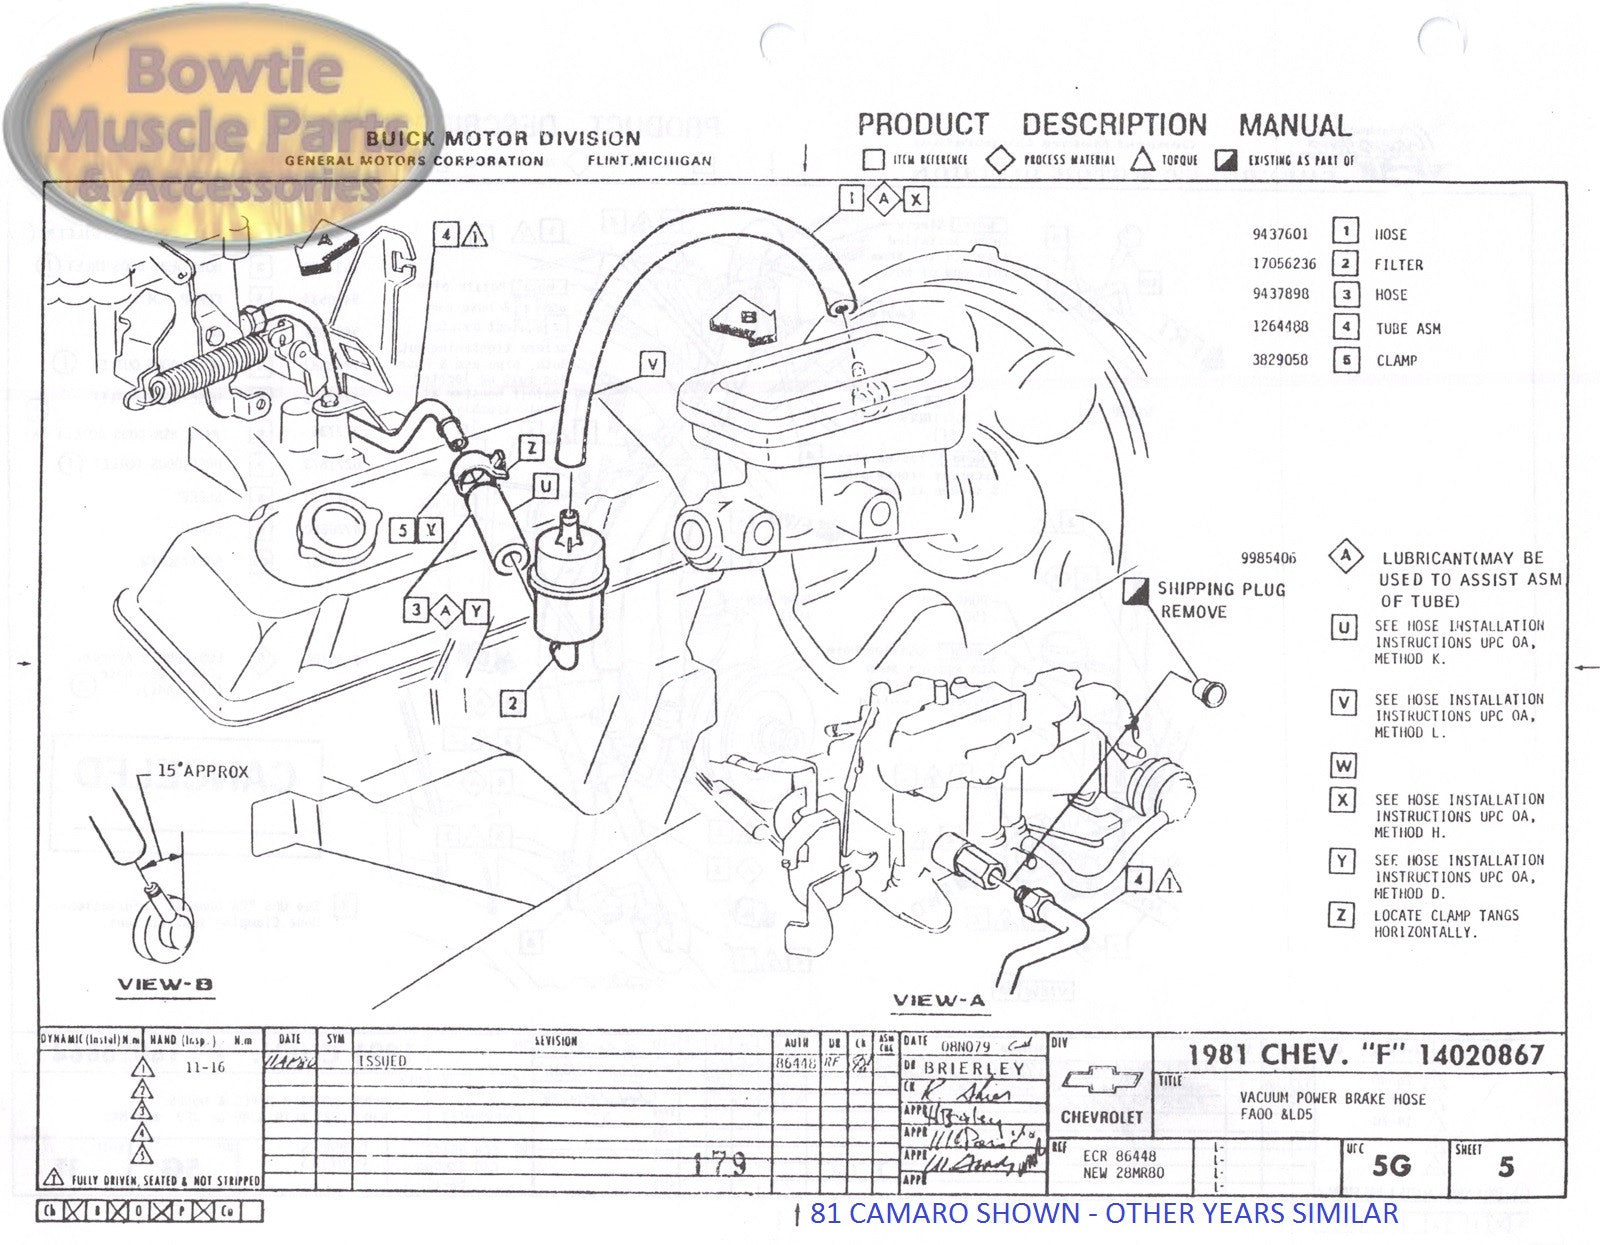 1986 86 camaro factory assembly manual z28 609 pages rh bowtiemuscleparts com 1968 camaro assembly manual page 163 1968 camaro assembly manual free